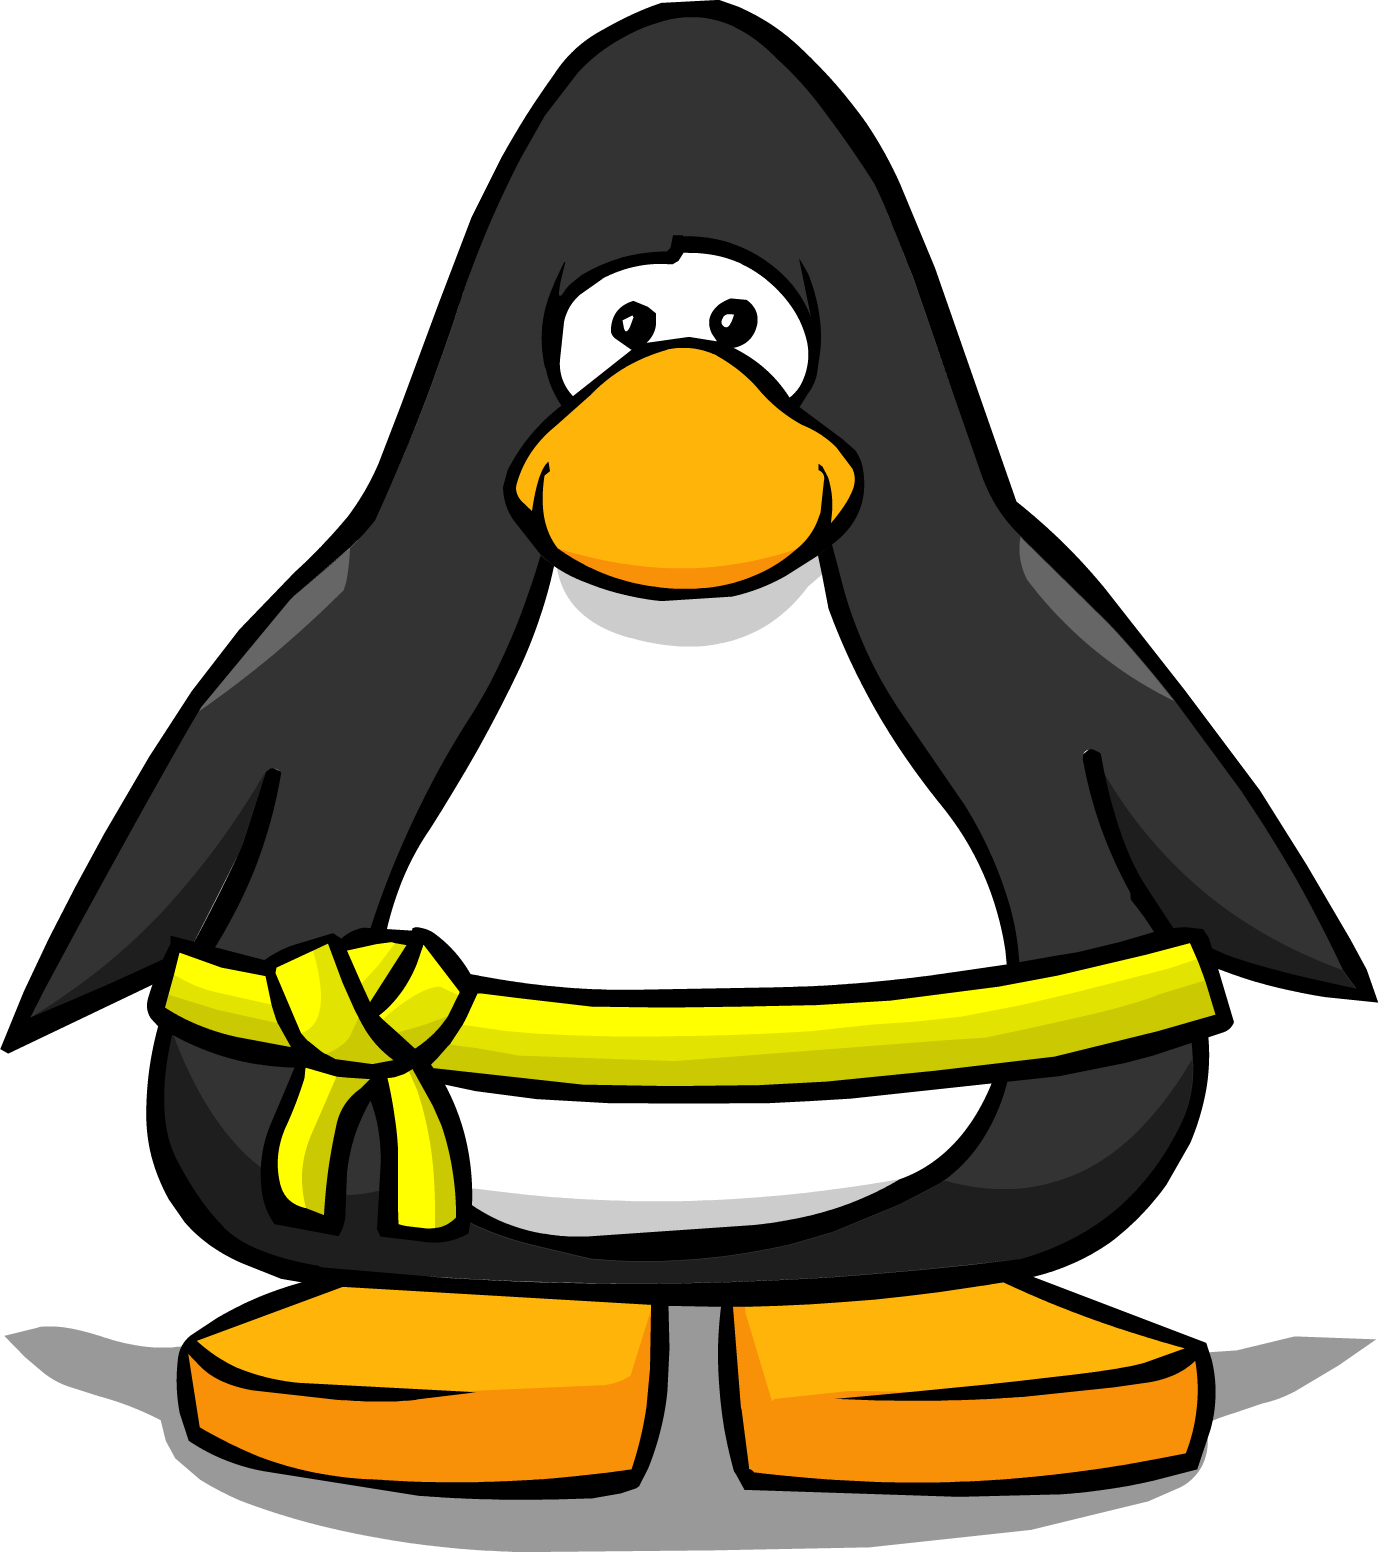 Image yellow belt from. Clipart penguin grey